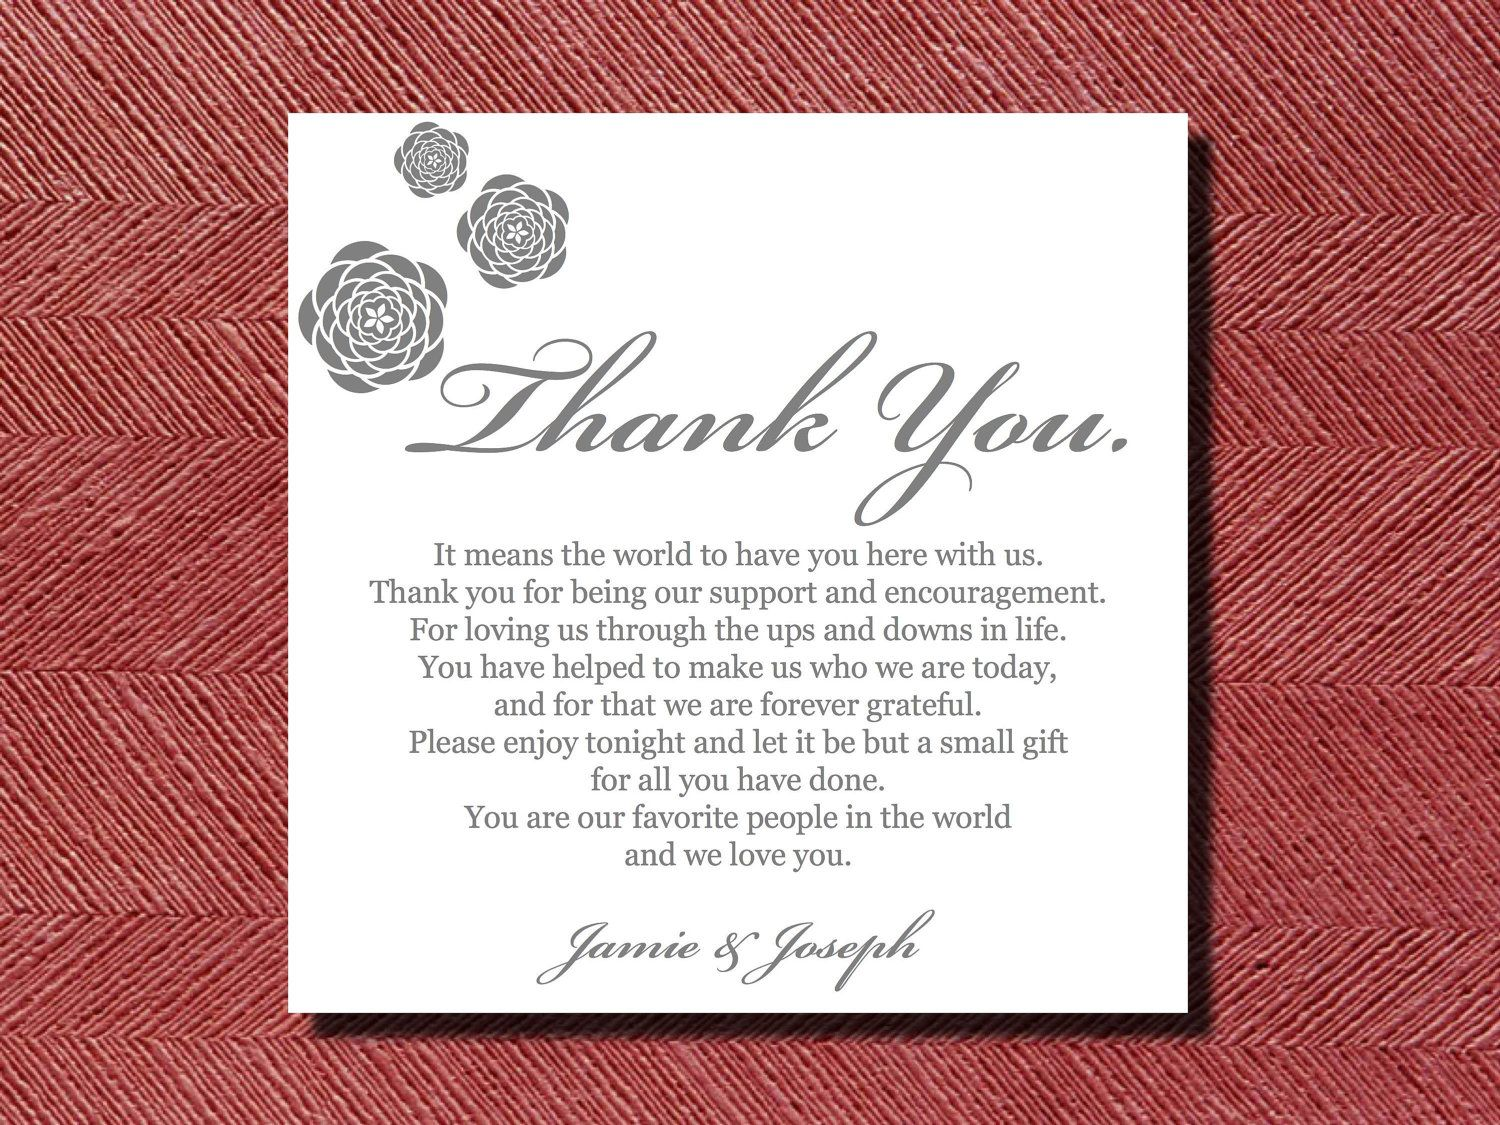 Wedding Reception Thank You Place Setting Card | Wedding Ideas ...